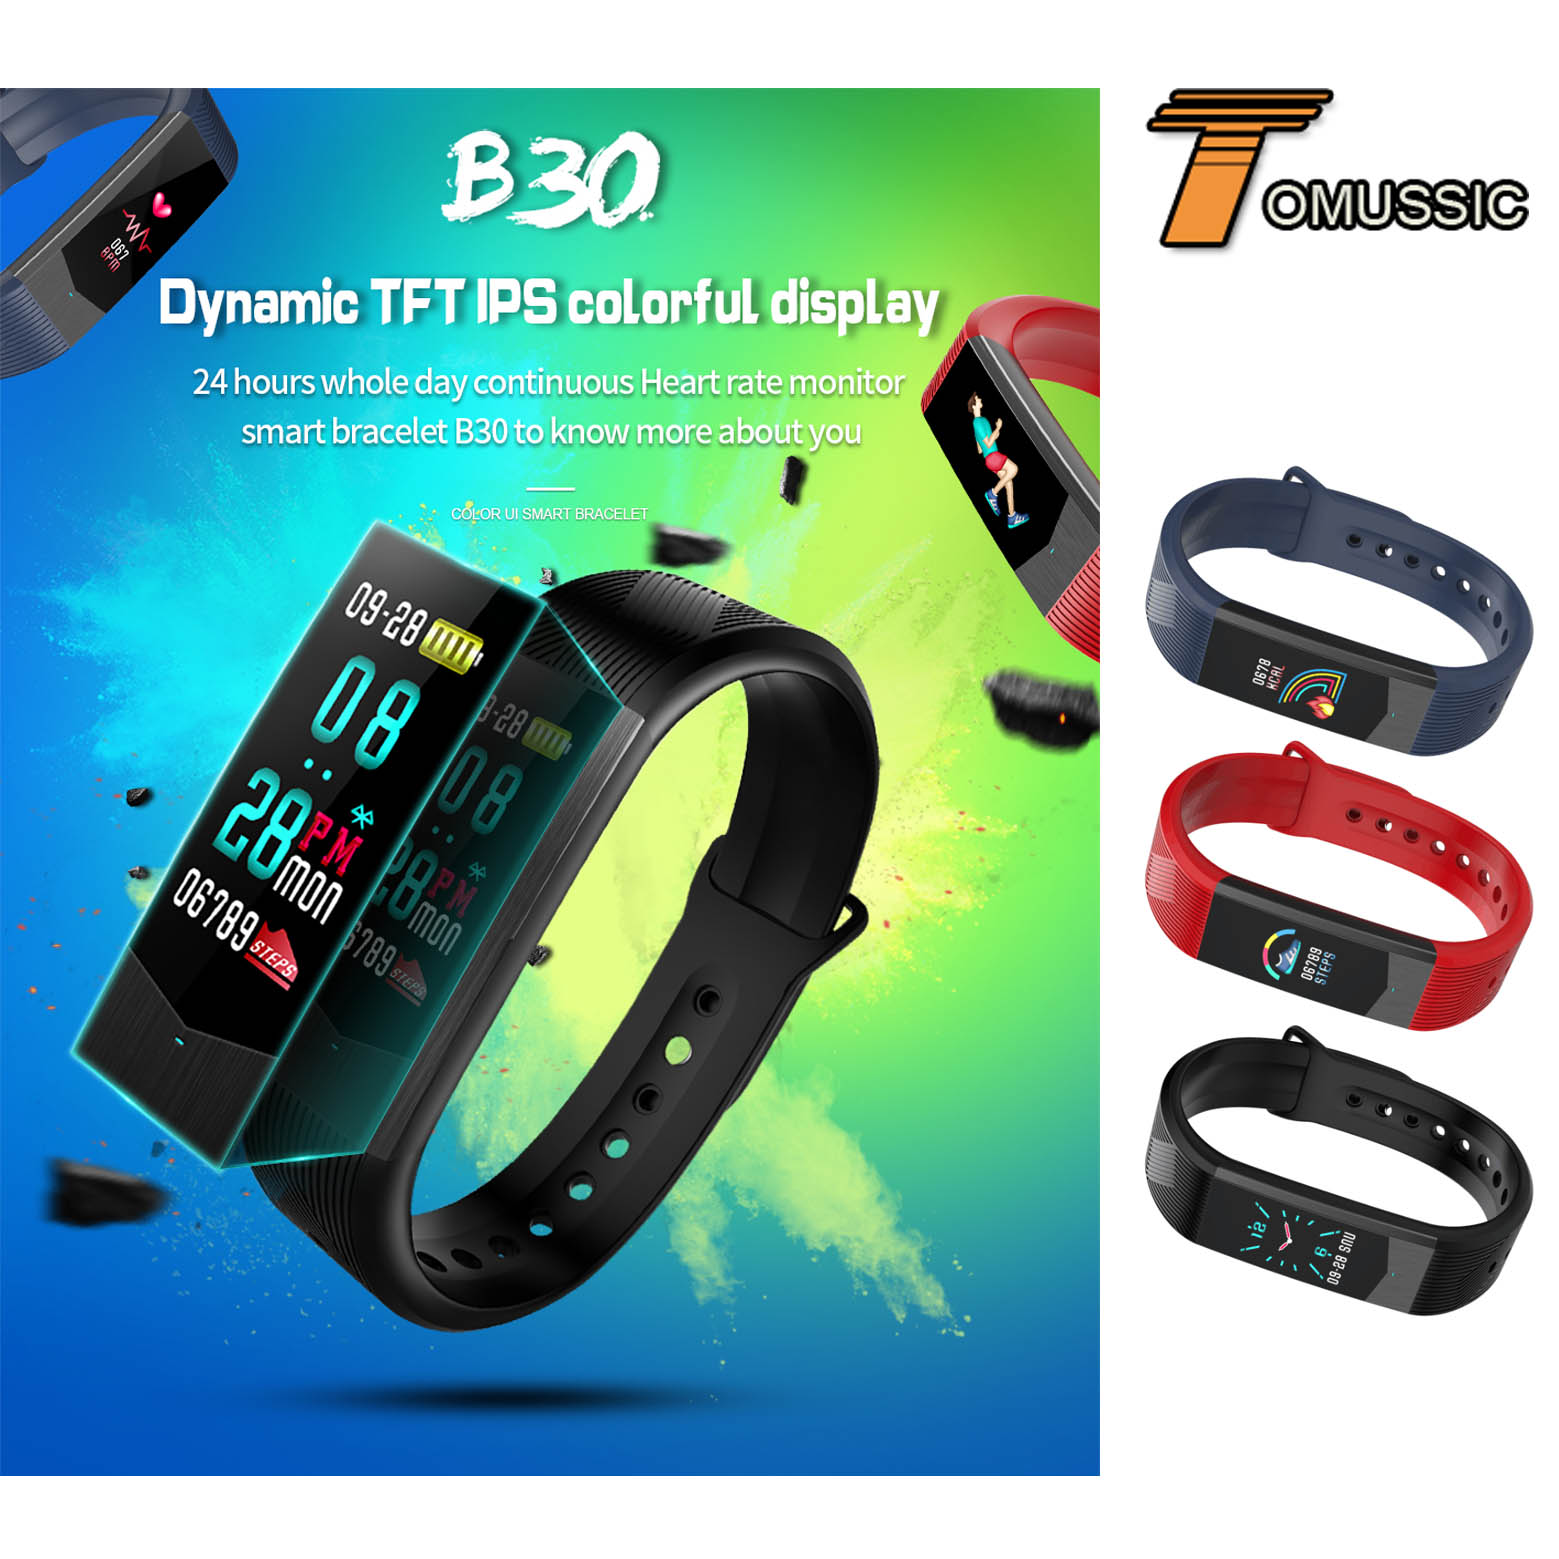 US $36 43 28% OFF|TOMUSSIC Colorful UI Face Fitness Bracelet Smart  Wristbands Heart Rate Monitor Sleep Tracker Band Smart Watch for IOS  Android-in